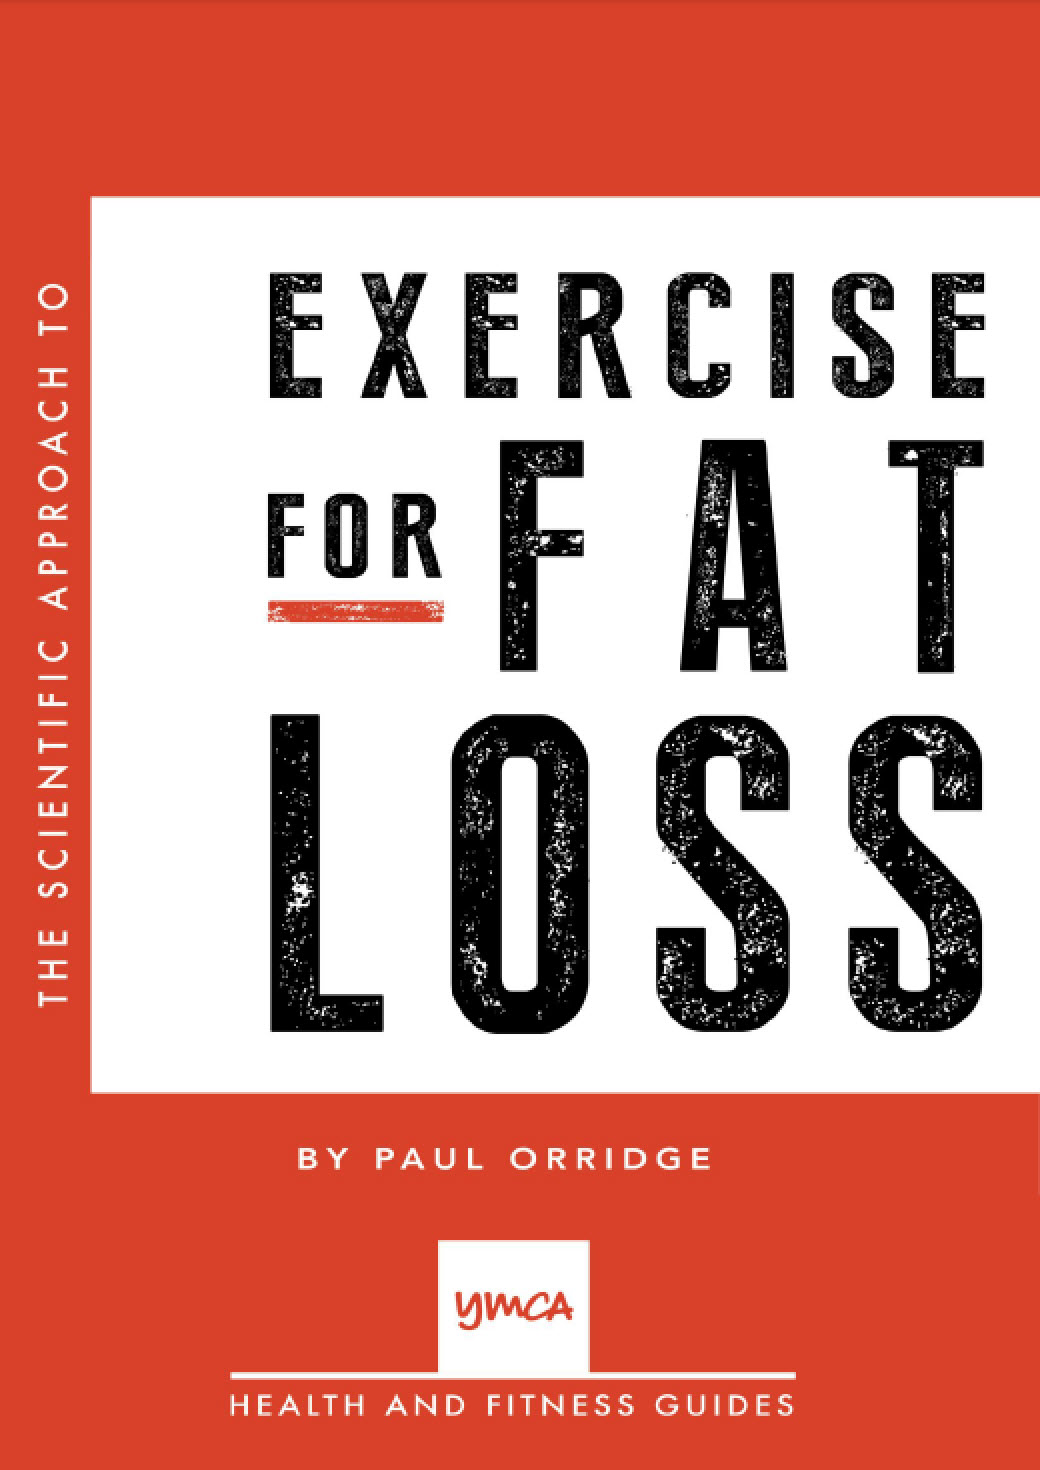 Exercise for fat loss e-book